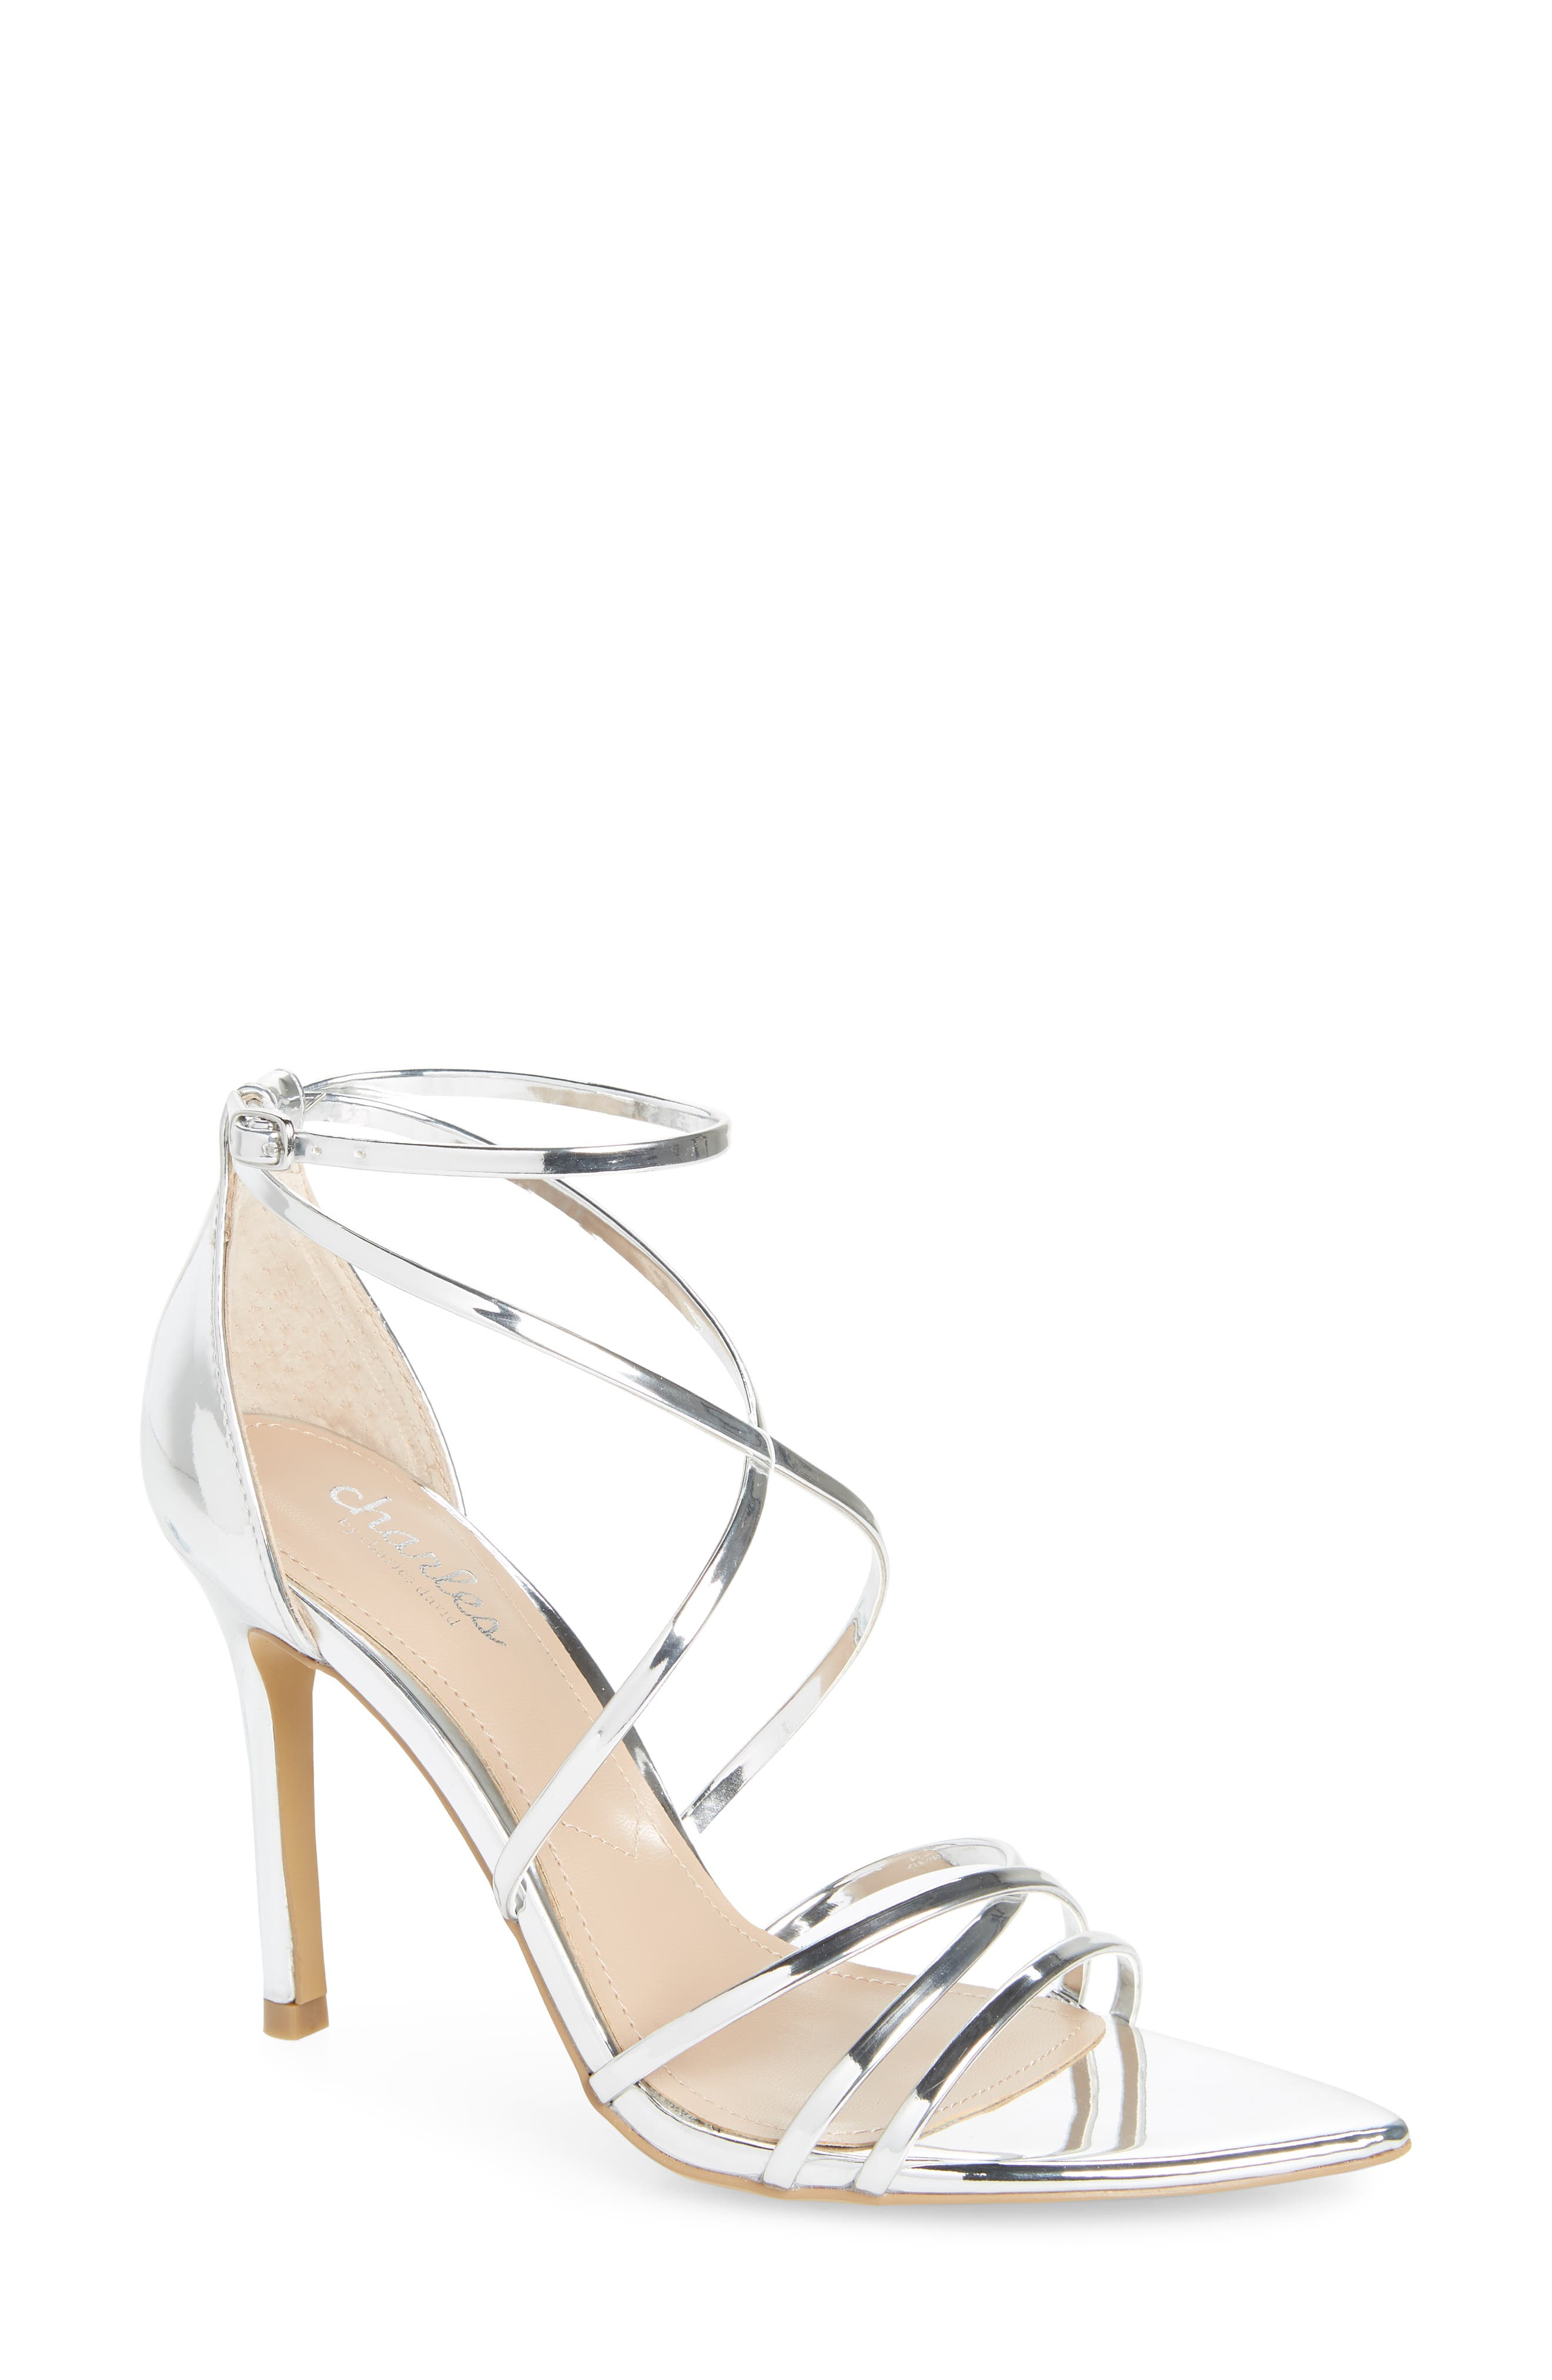 CHARLES BY CHARLES DAVID, Trickster Strappy Sandal, Main thumbnail 1, color, SILVER FAUX LEATHER